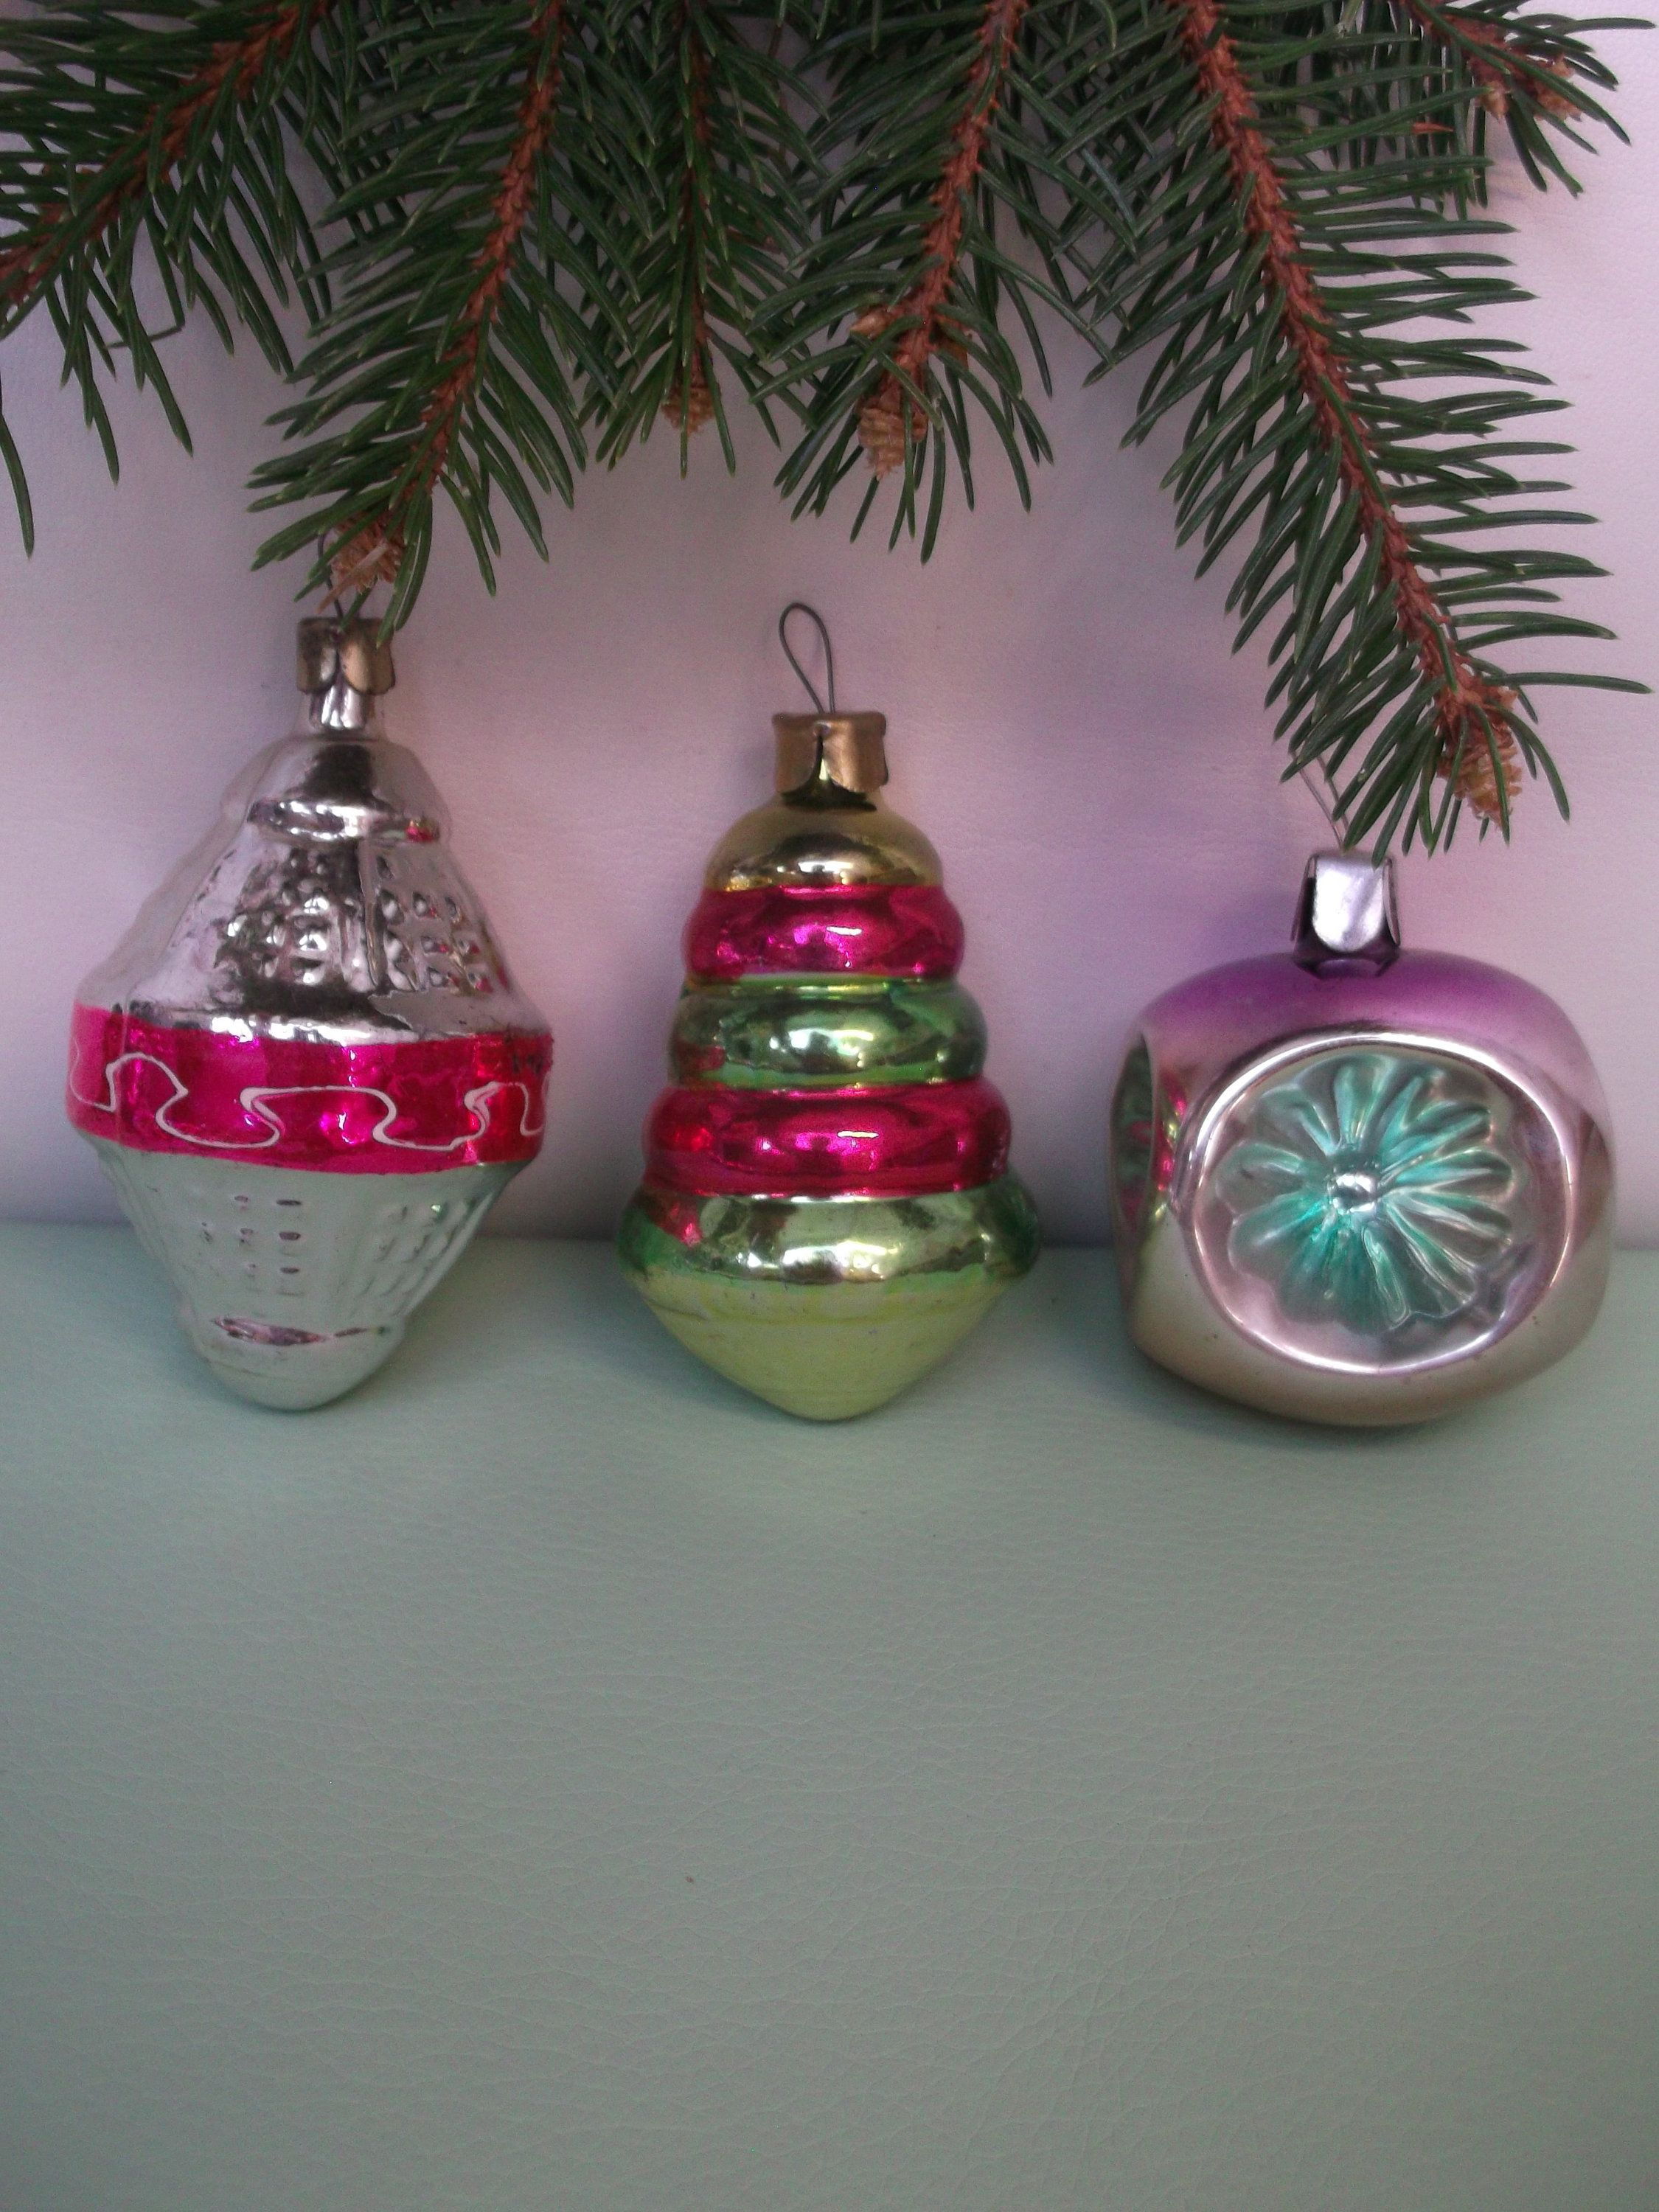 Vintage Ornaments Retro Christmas Tree Glass Decoreations Etsy In 2020 Retro Christmas Tree Vintage Ornaments Antique Christmas Tree